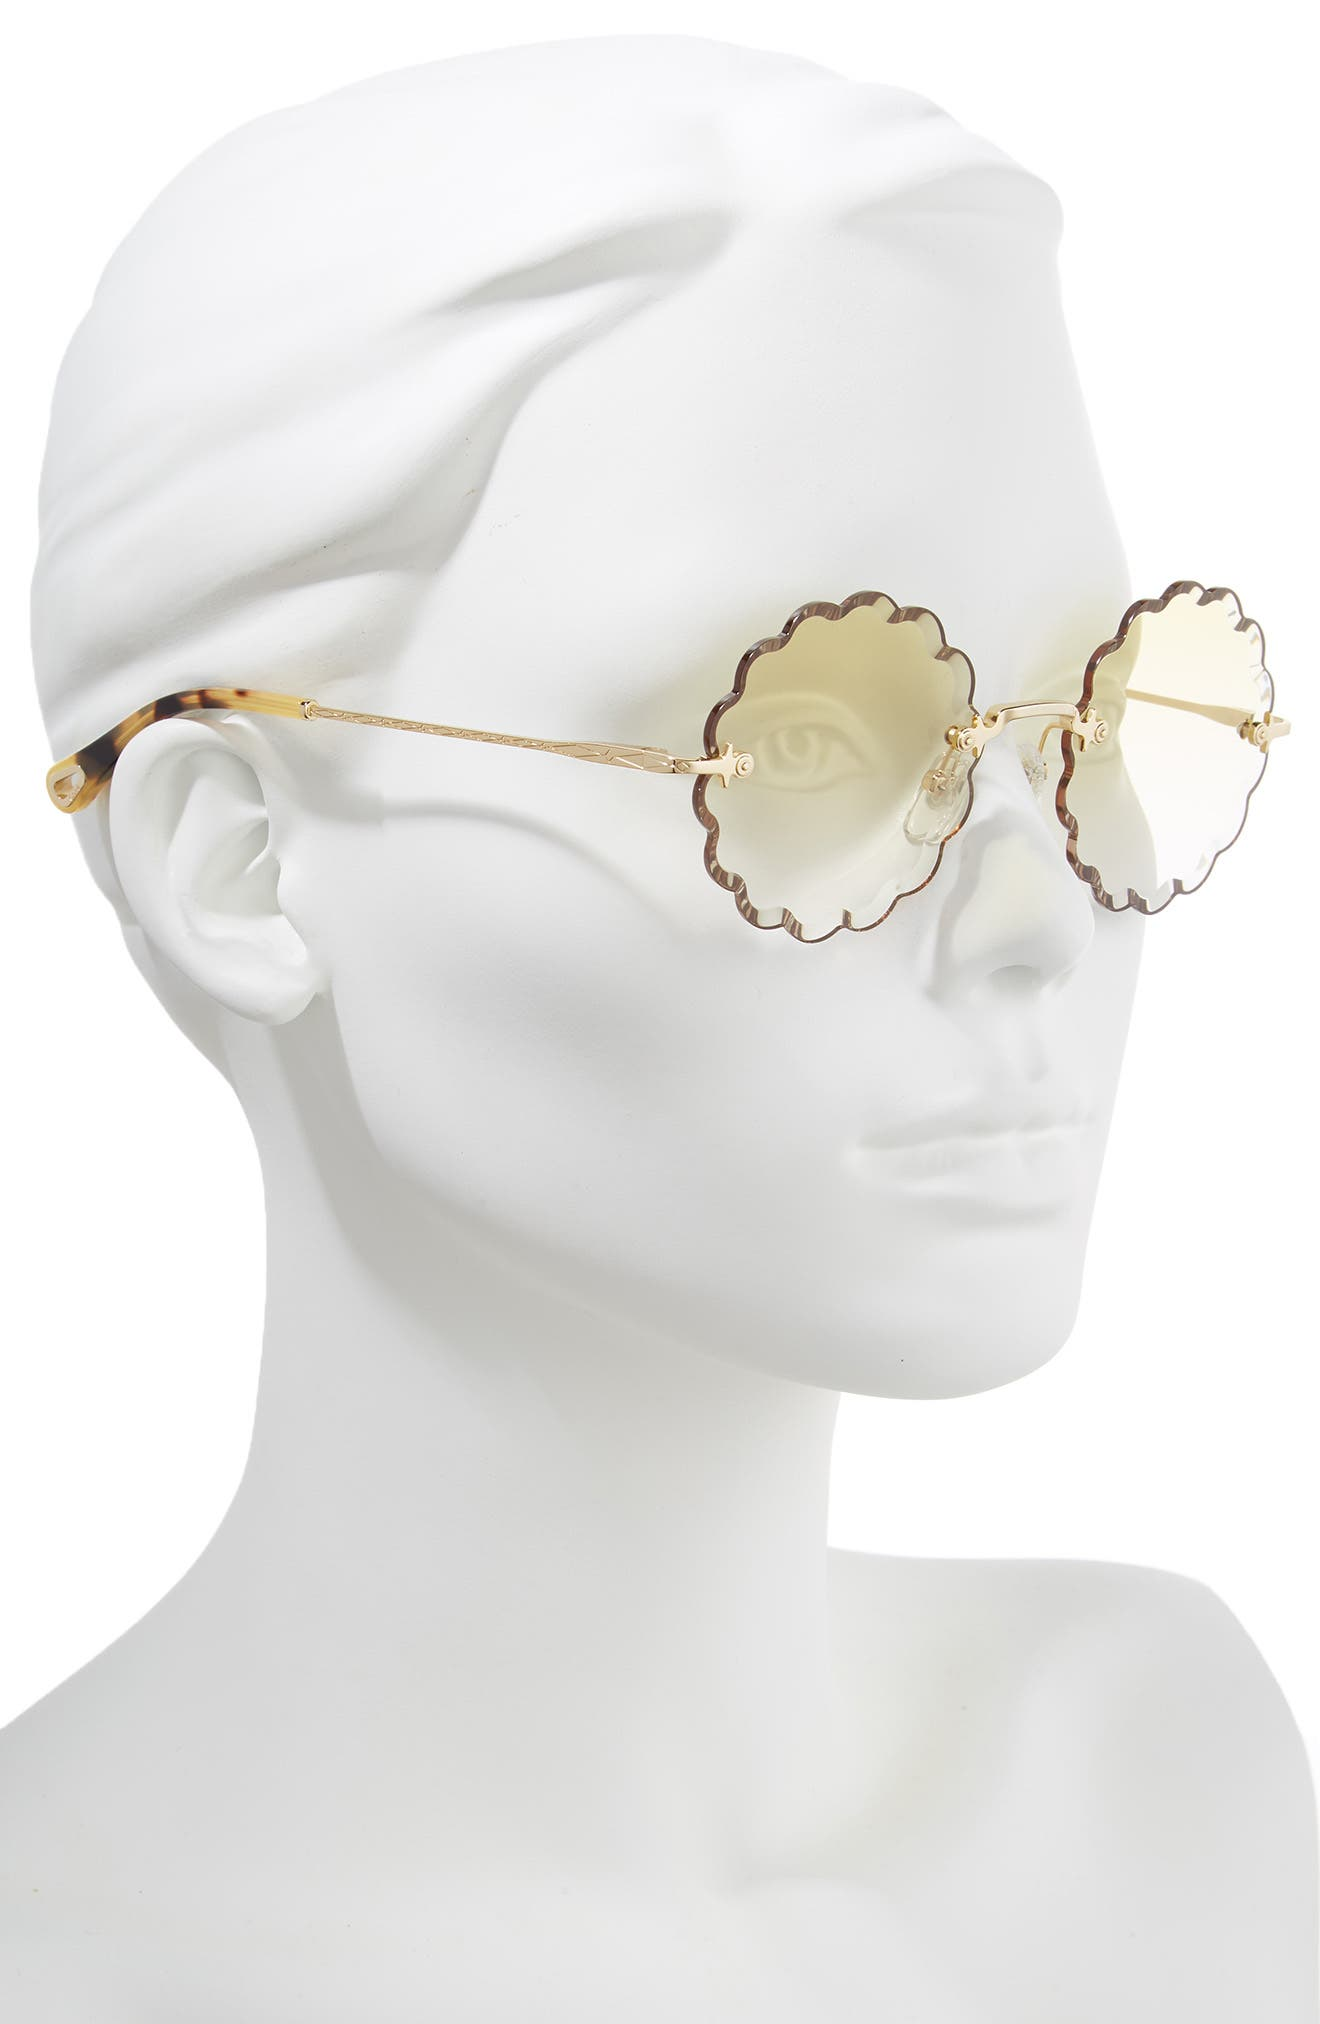 CHLOÉ, Rosie 53mm Scalloped Sunglasses, Alternate thumbnail 2, color, GOLD/ GRADIENT YELLOW